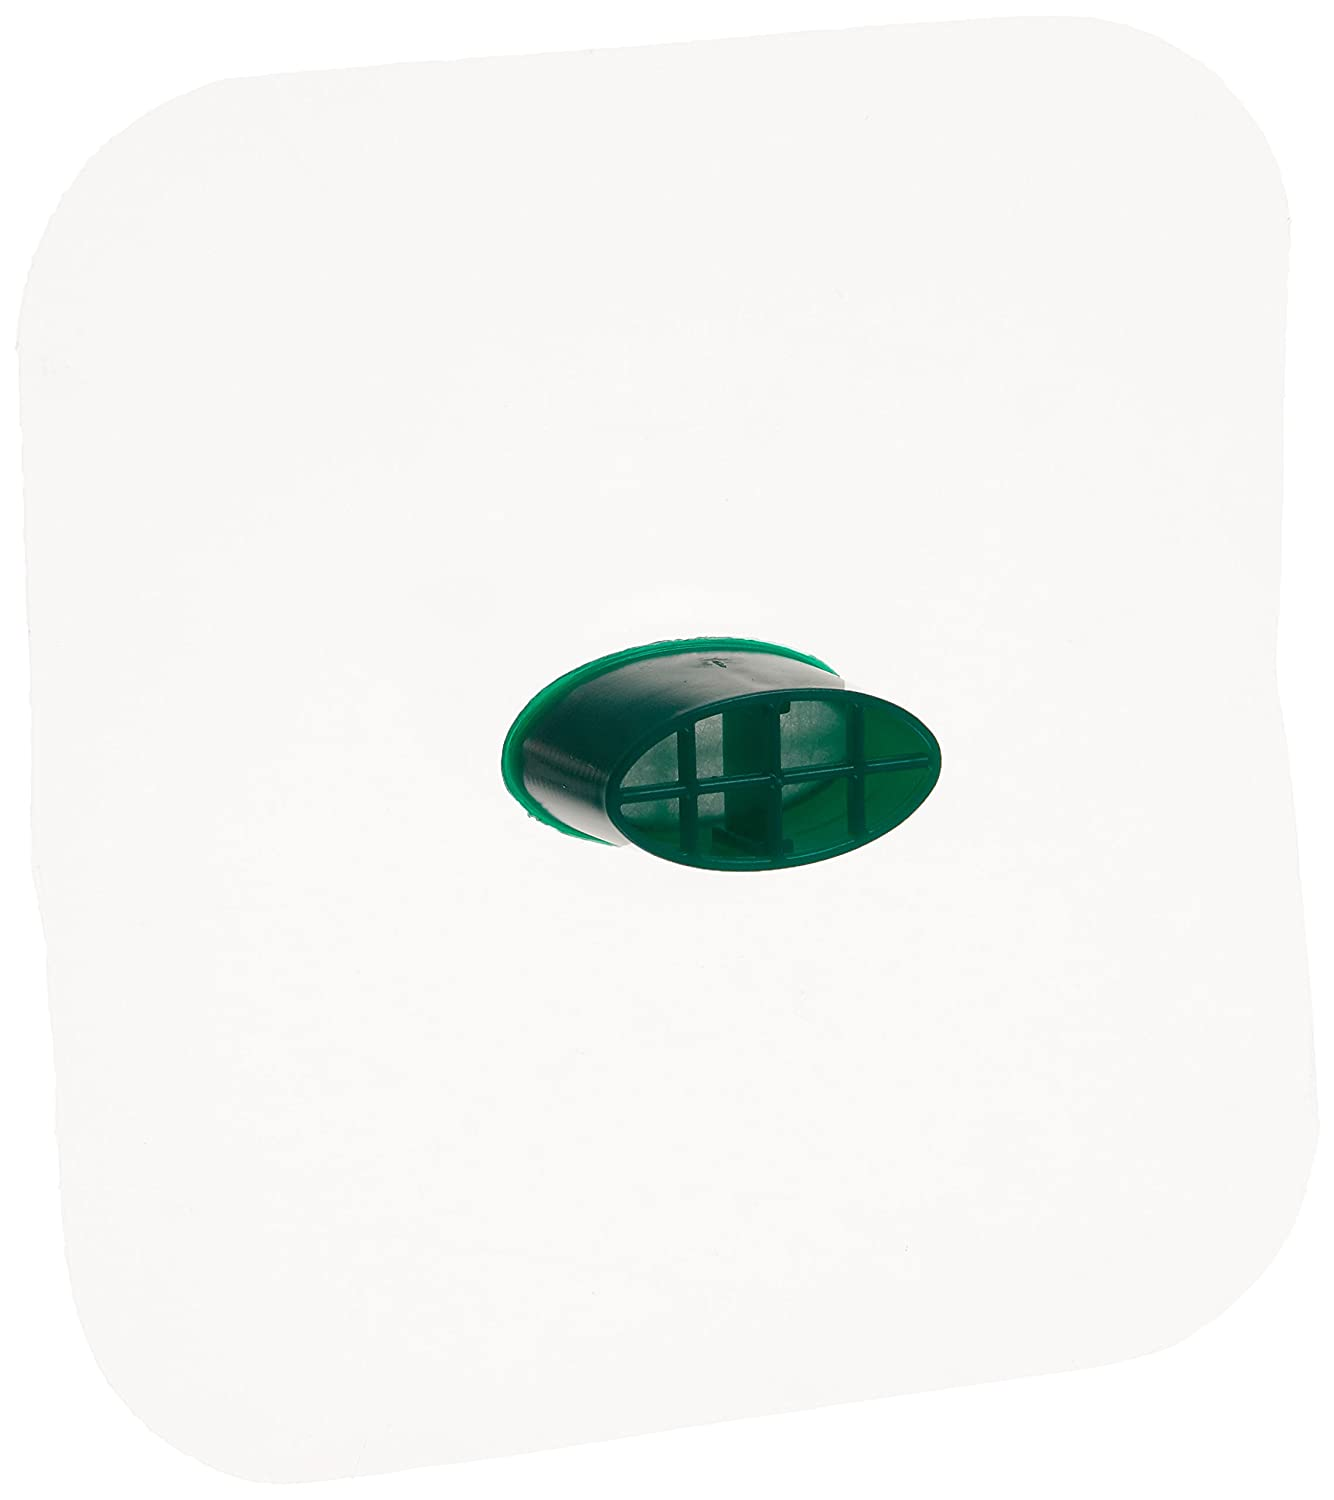 North by Honeywell 121090 Low price CPR Under blast sales Filtershield Mouth Filtered Barri